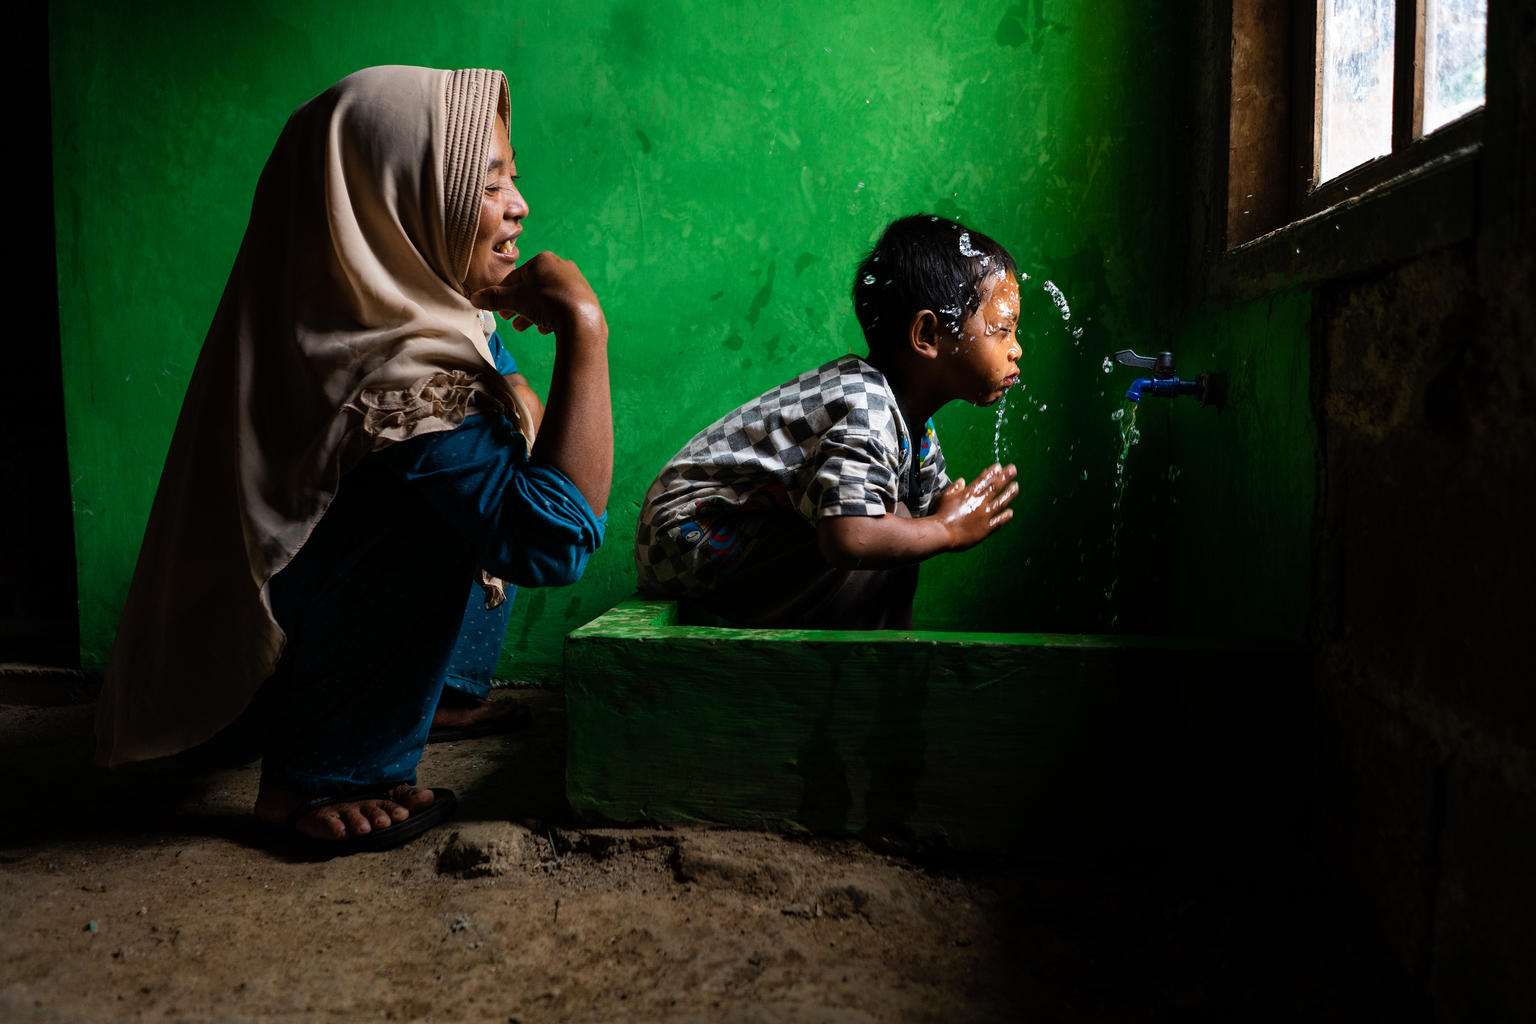 A mother looks on as a child washed his face at a water source in Indonesia.